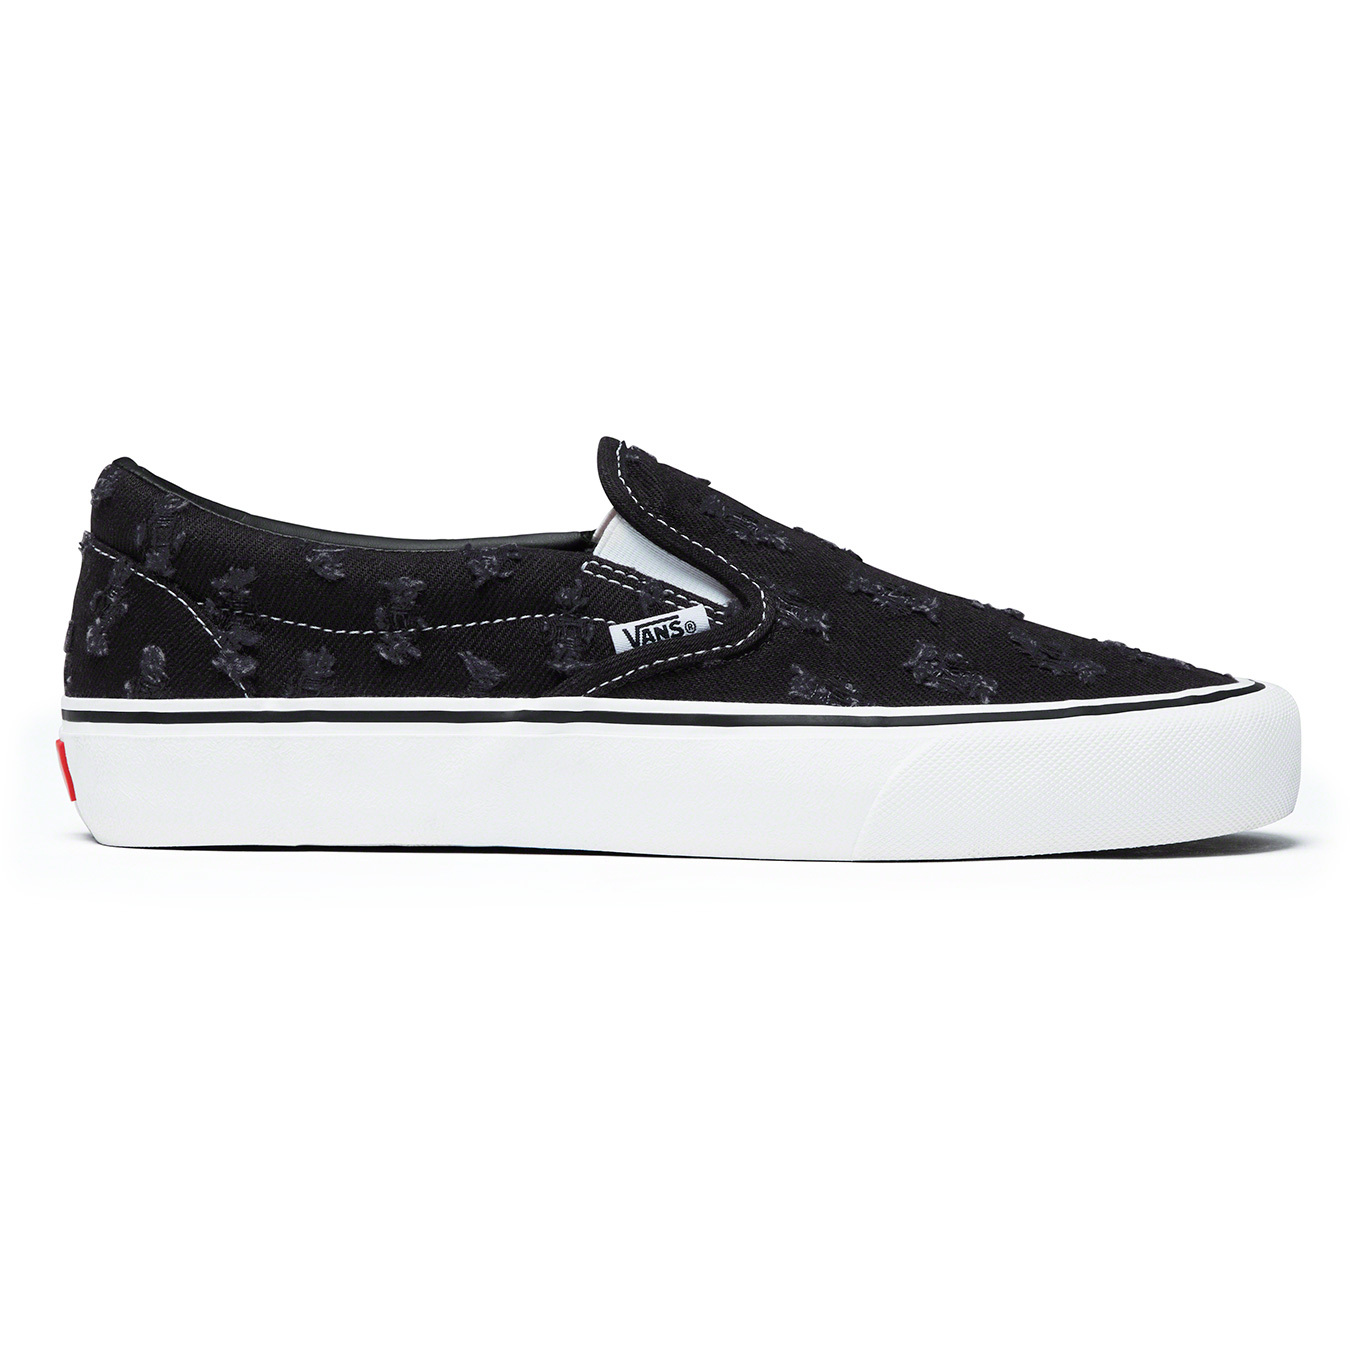 supreme-vans-hole-punch-denim-slip-on-pro